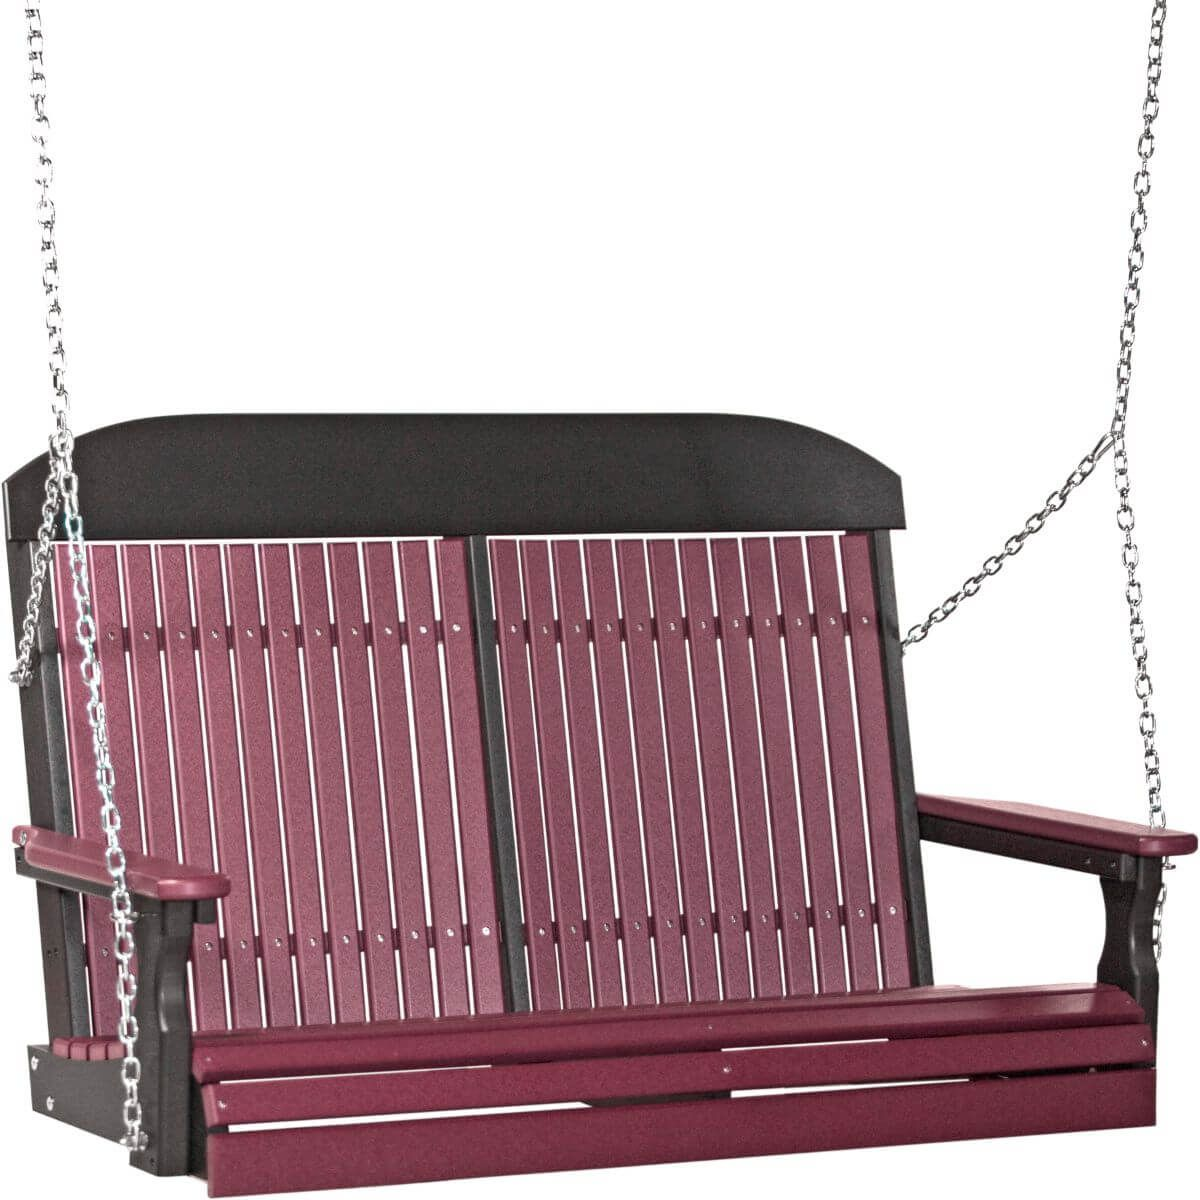 Cherrywood and Black Stockton Porch Swing